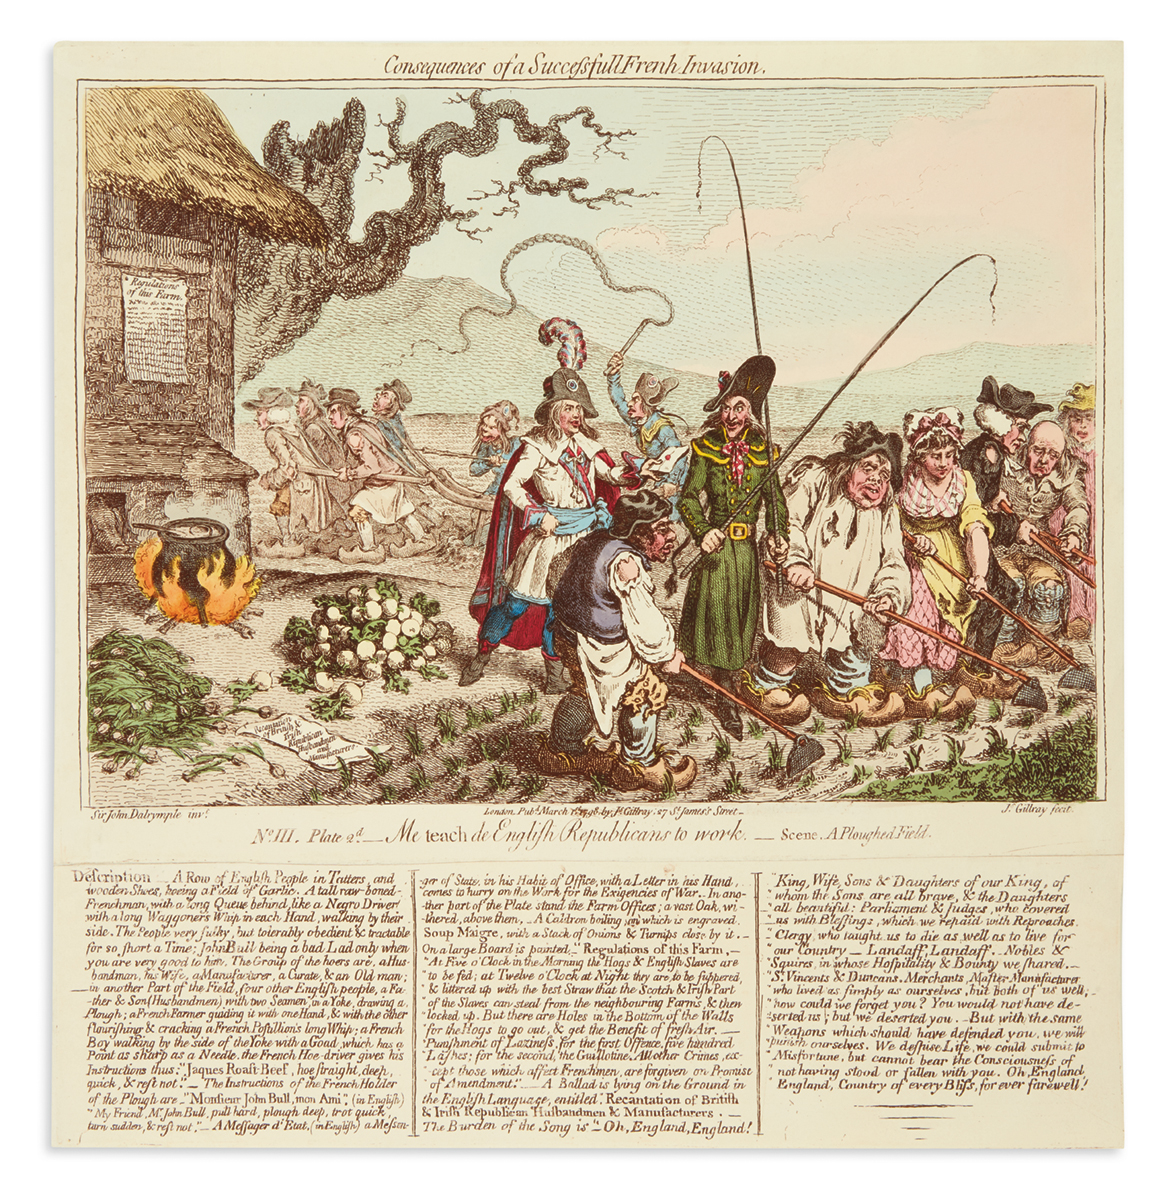 GILLRAY-JAMES-Consequences-of-a-Successfull-French-Invasion-